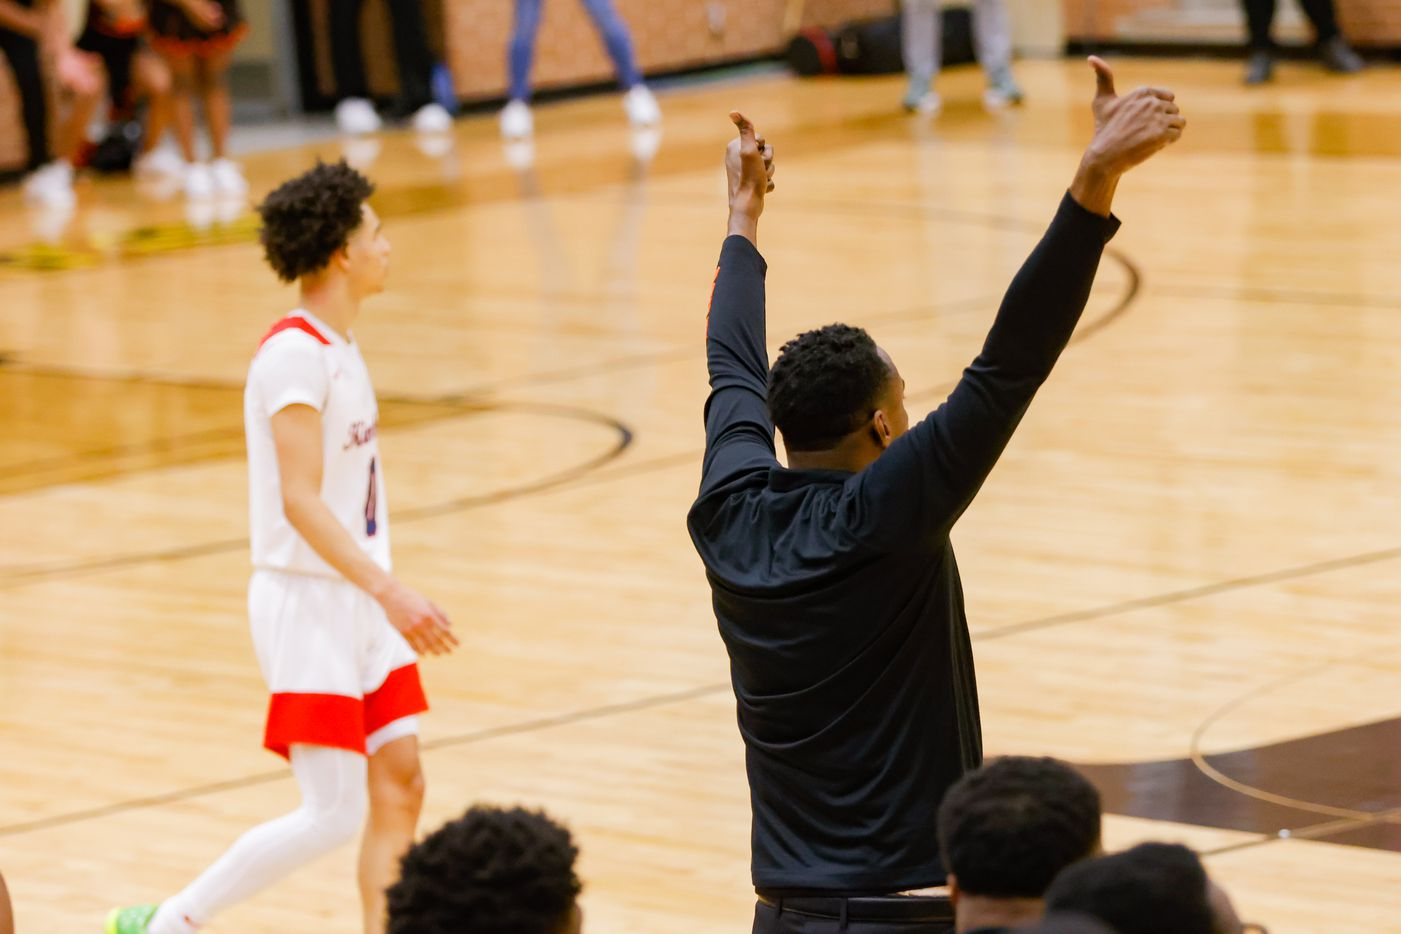 Lancaster's coach Ferrin Douglas celebrates his team catching up to Kimball before the end of the first half of a boys basketball UIL Class 5A Region II playoff game against Kimball in Forney on Friday, March 5, 2021. (Juan Figueroa/ The Dallas Morning News)